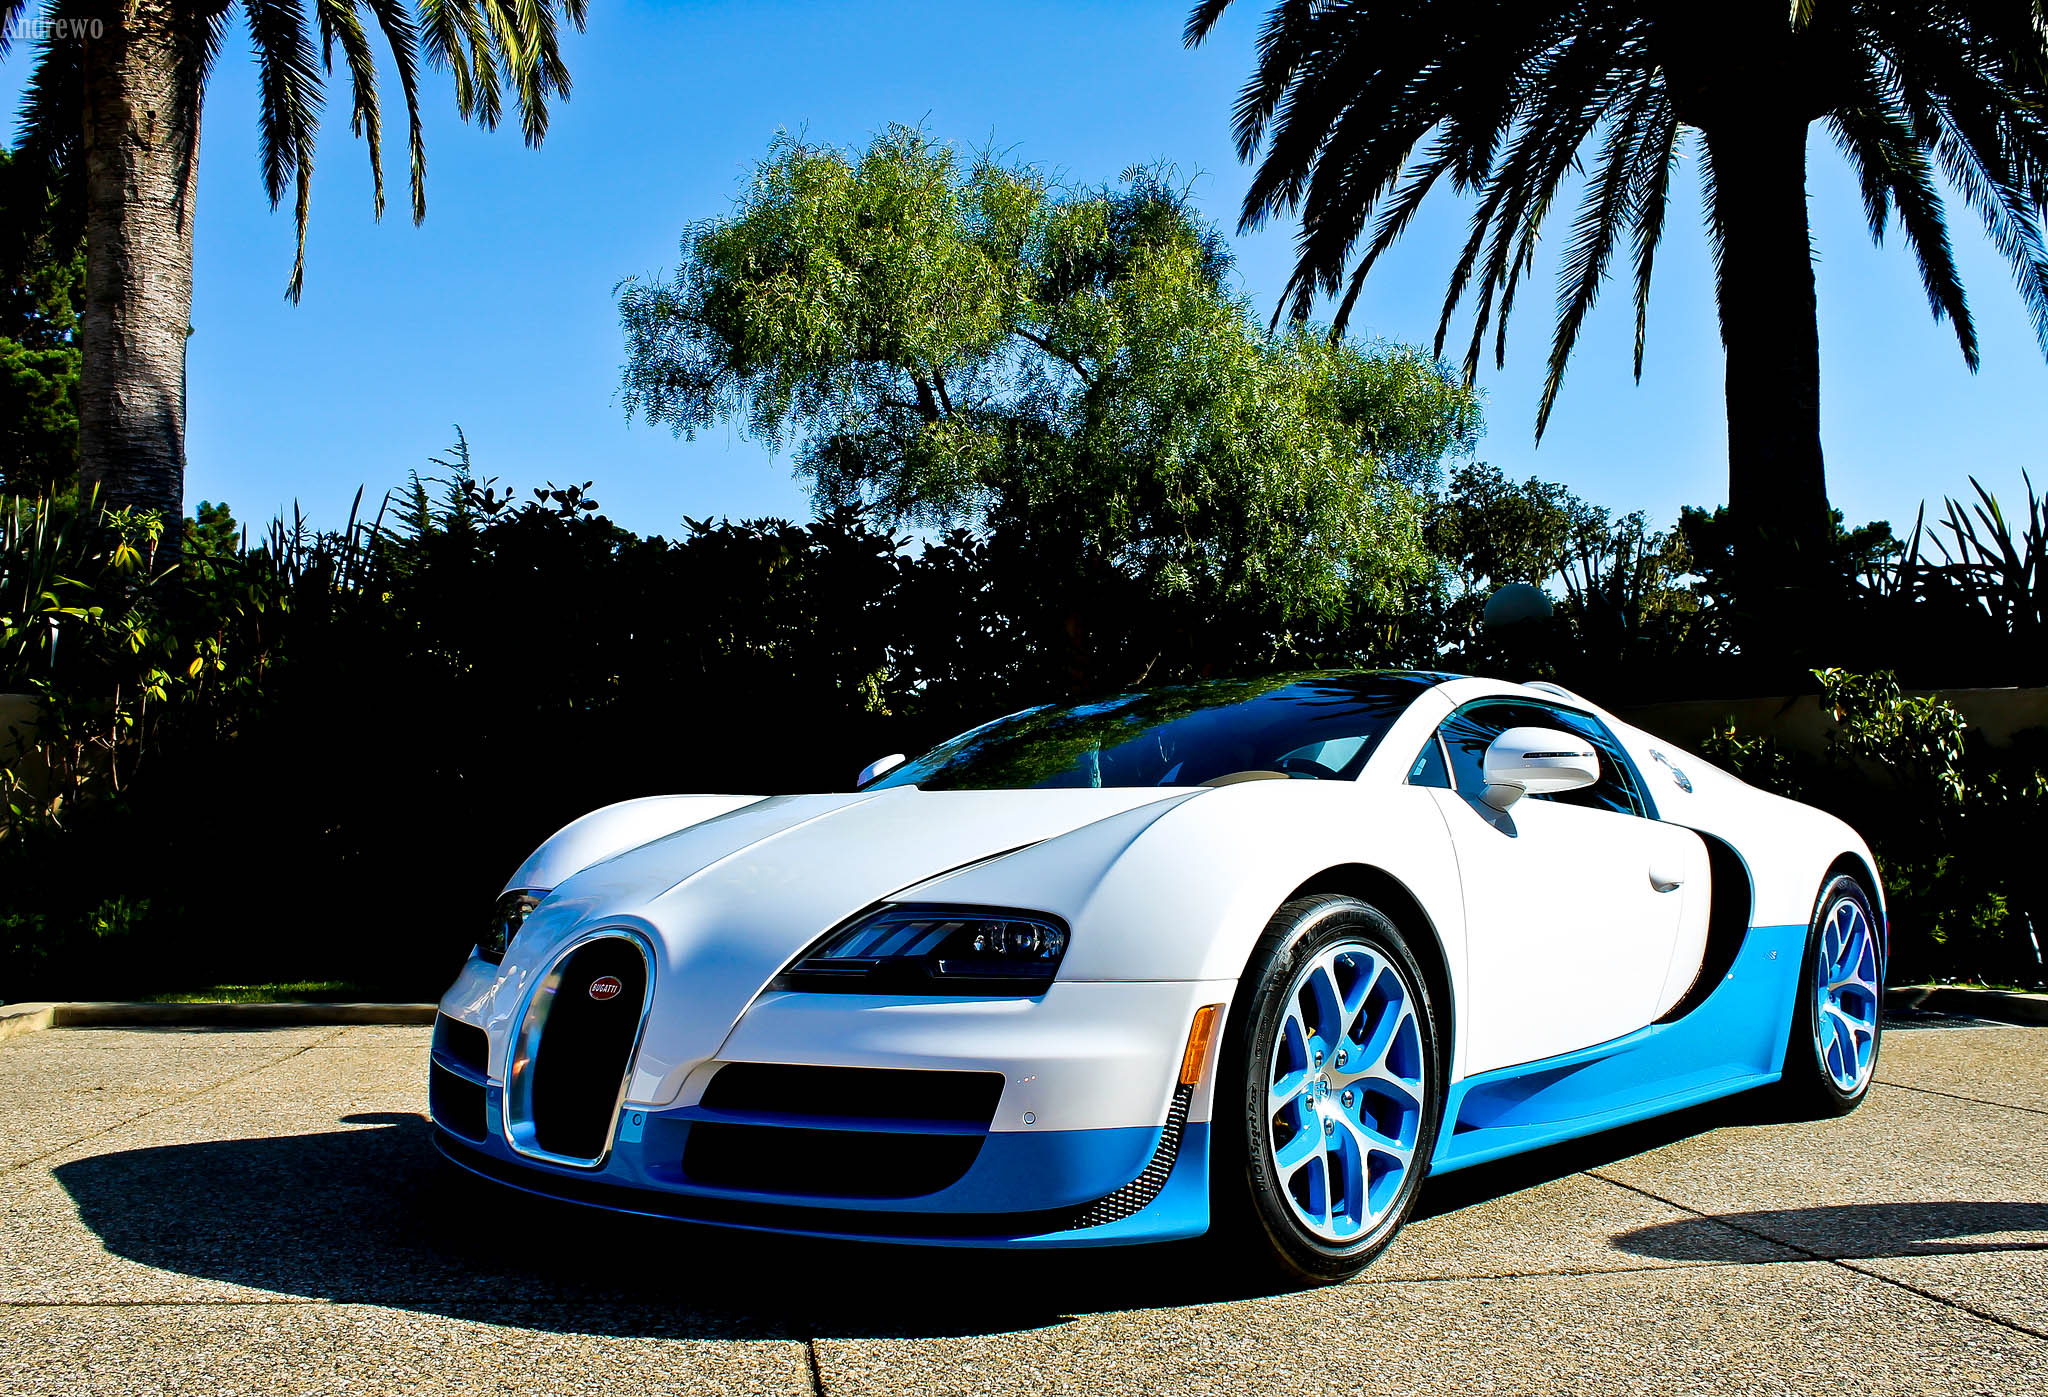 Bugatti Veyron Wallpapers Pictures In High Quality All Hd Wallpapers